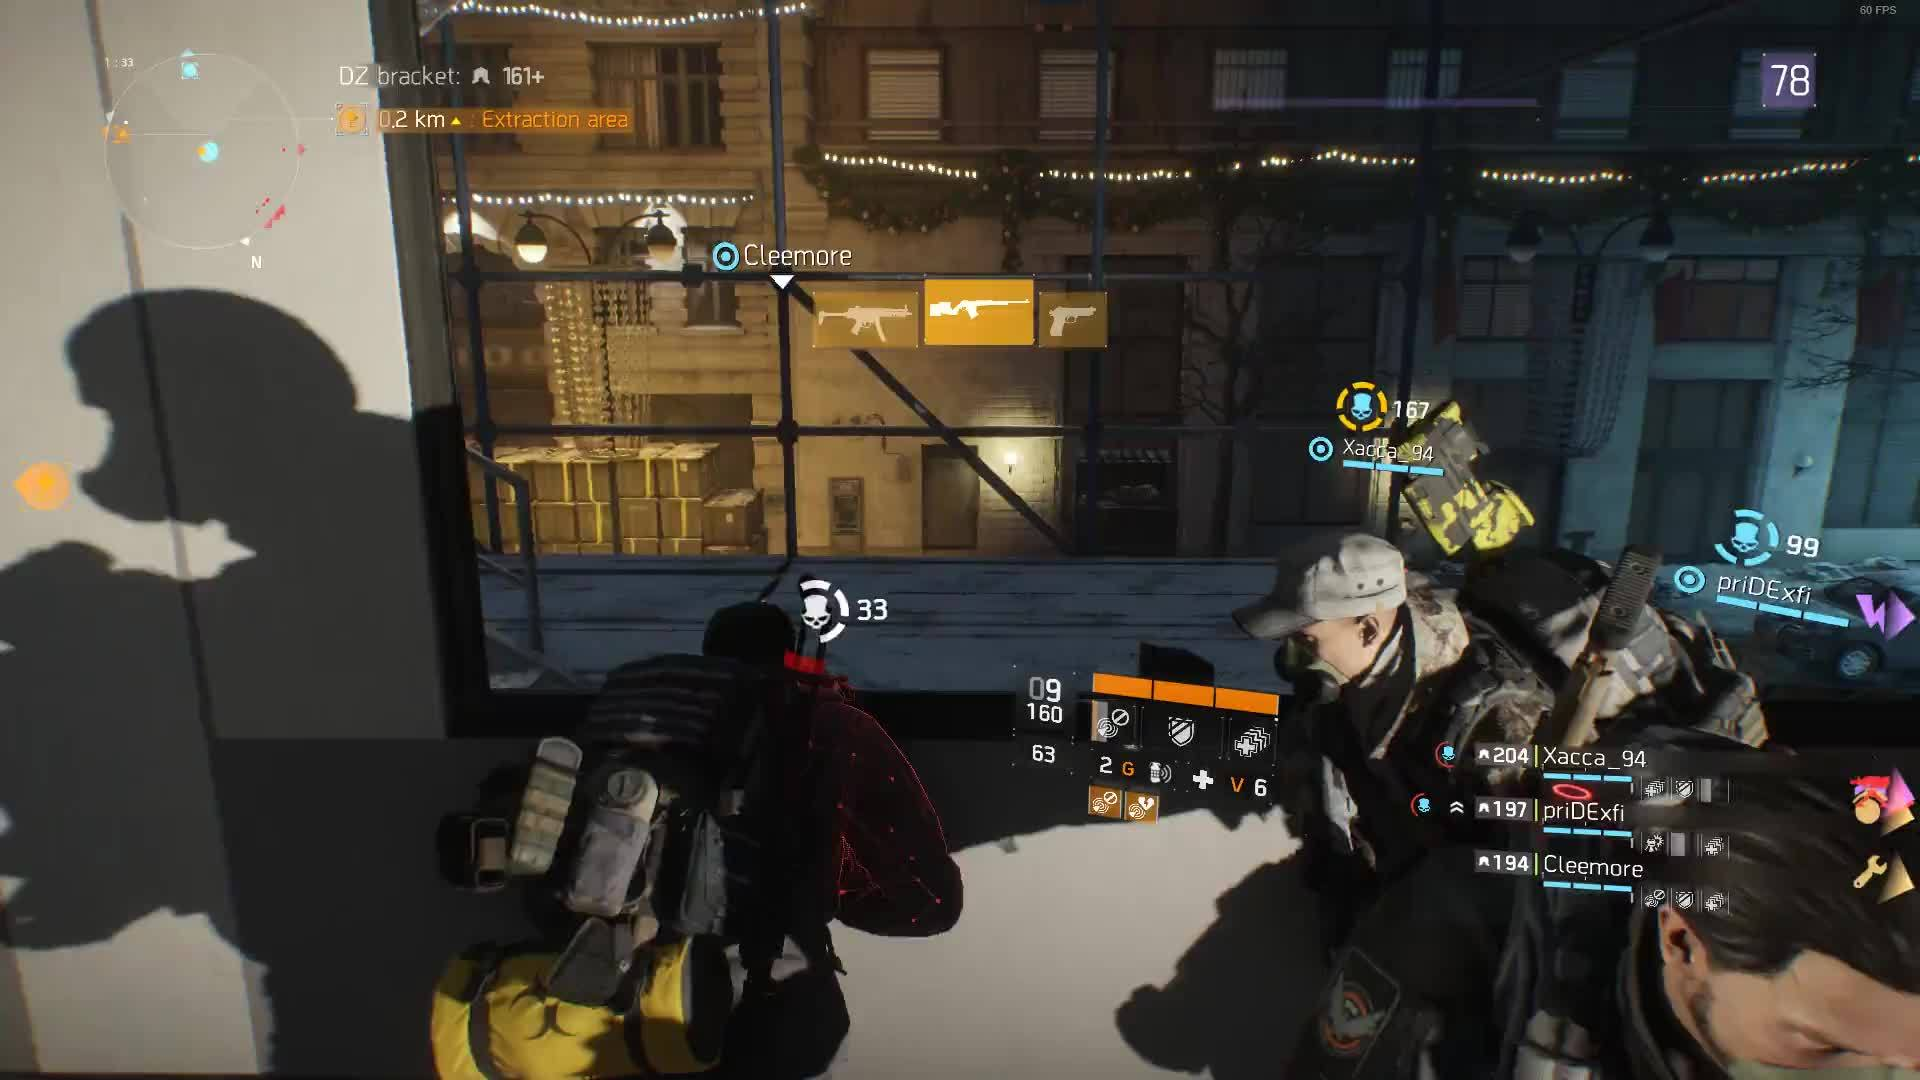 thedivision, One Shot with 182 M44 without Explosive Bullets GIFs